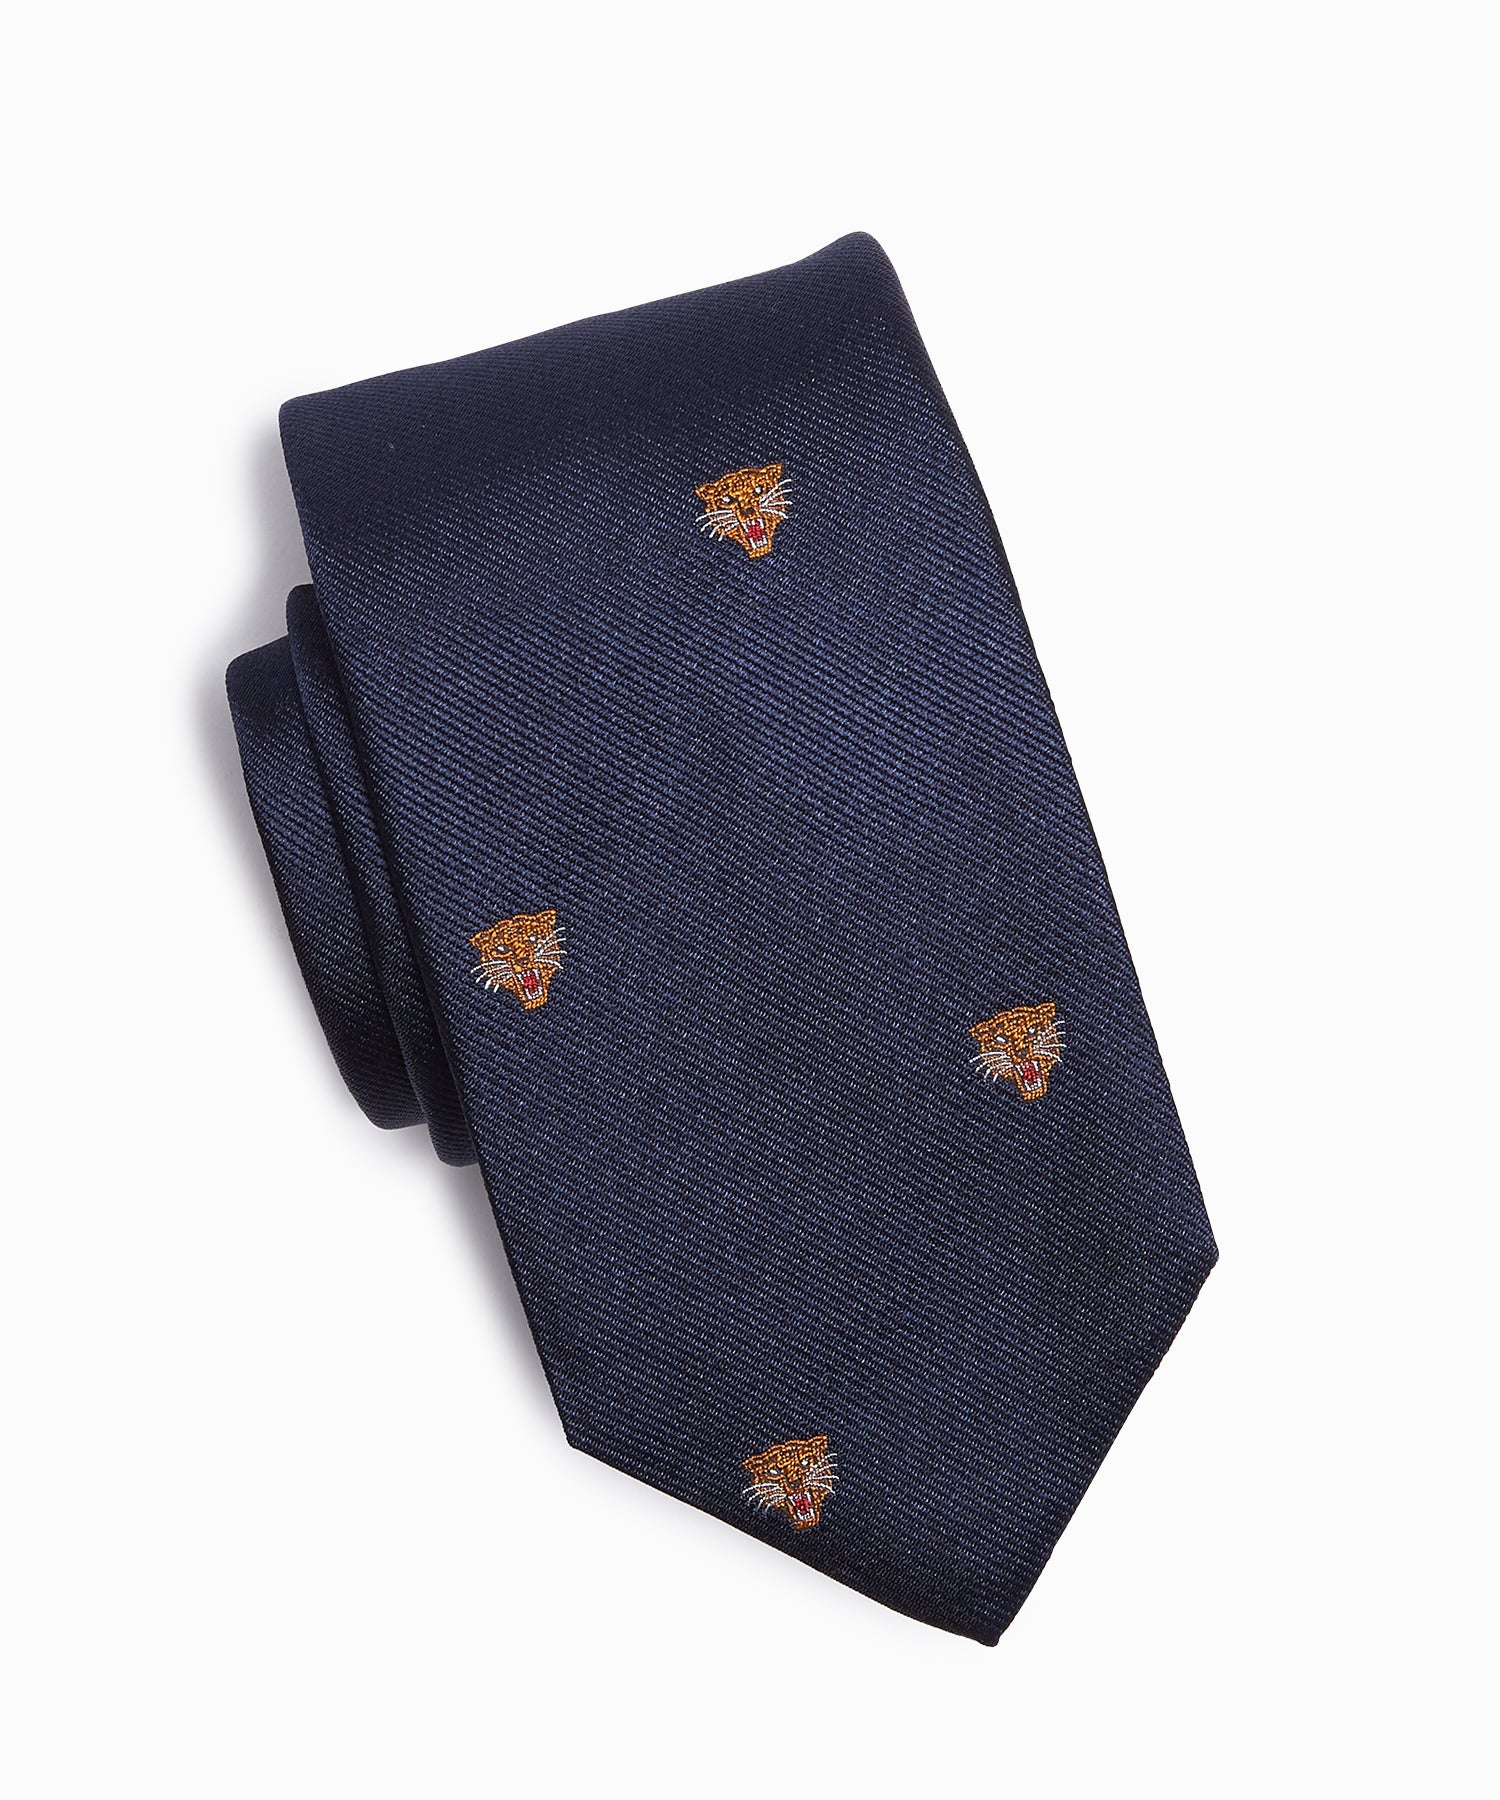 Drake's Tiger Head Motif Silk Tie in Navy